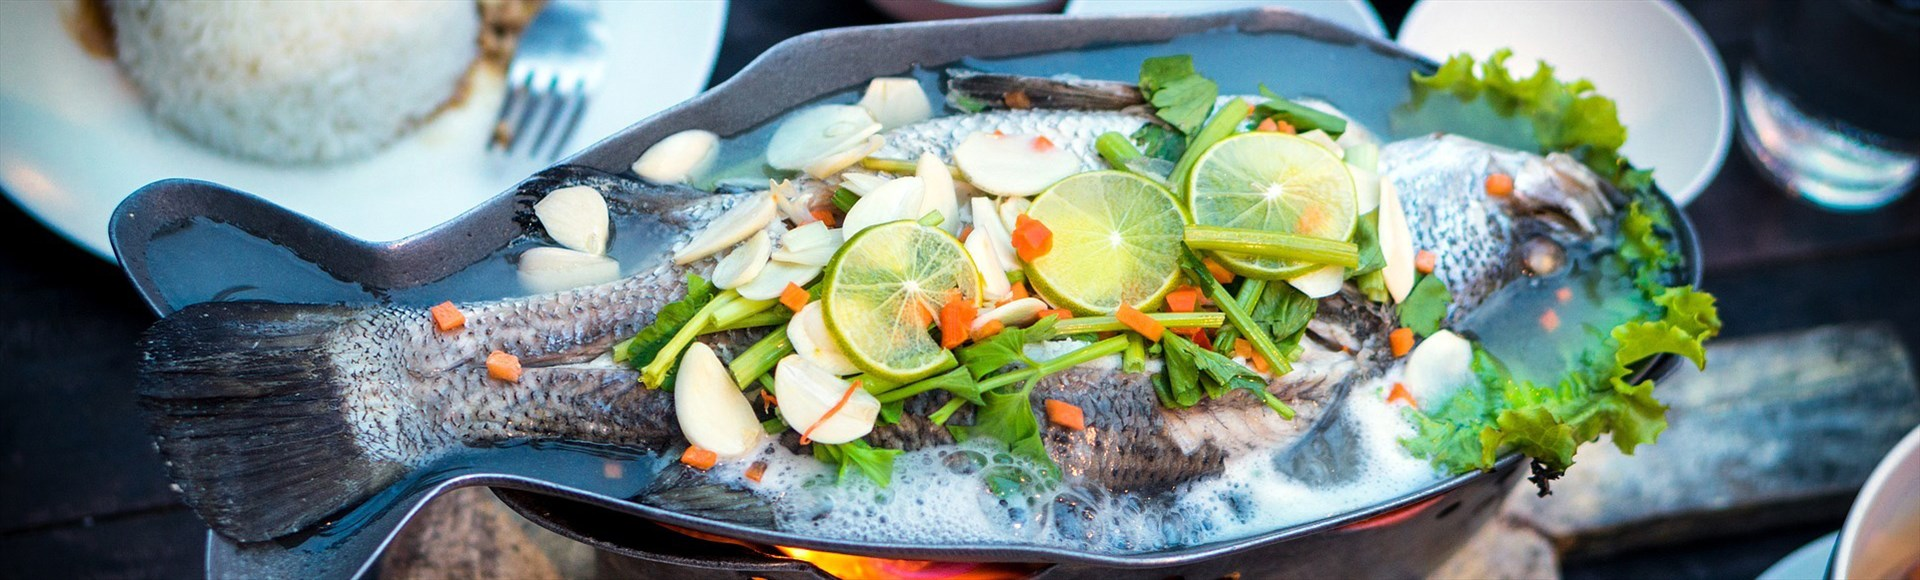 fish-with-lemon-and-vegetables - Alargo Private Chef Service in Crete | Christos & Michael